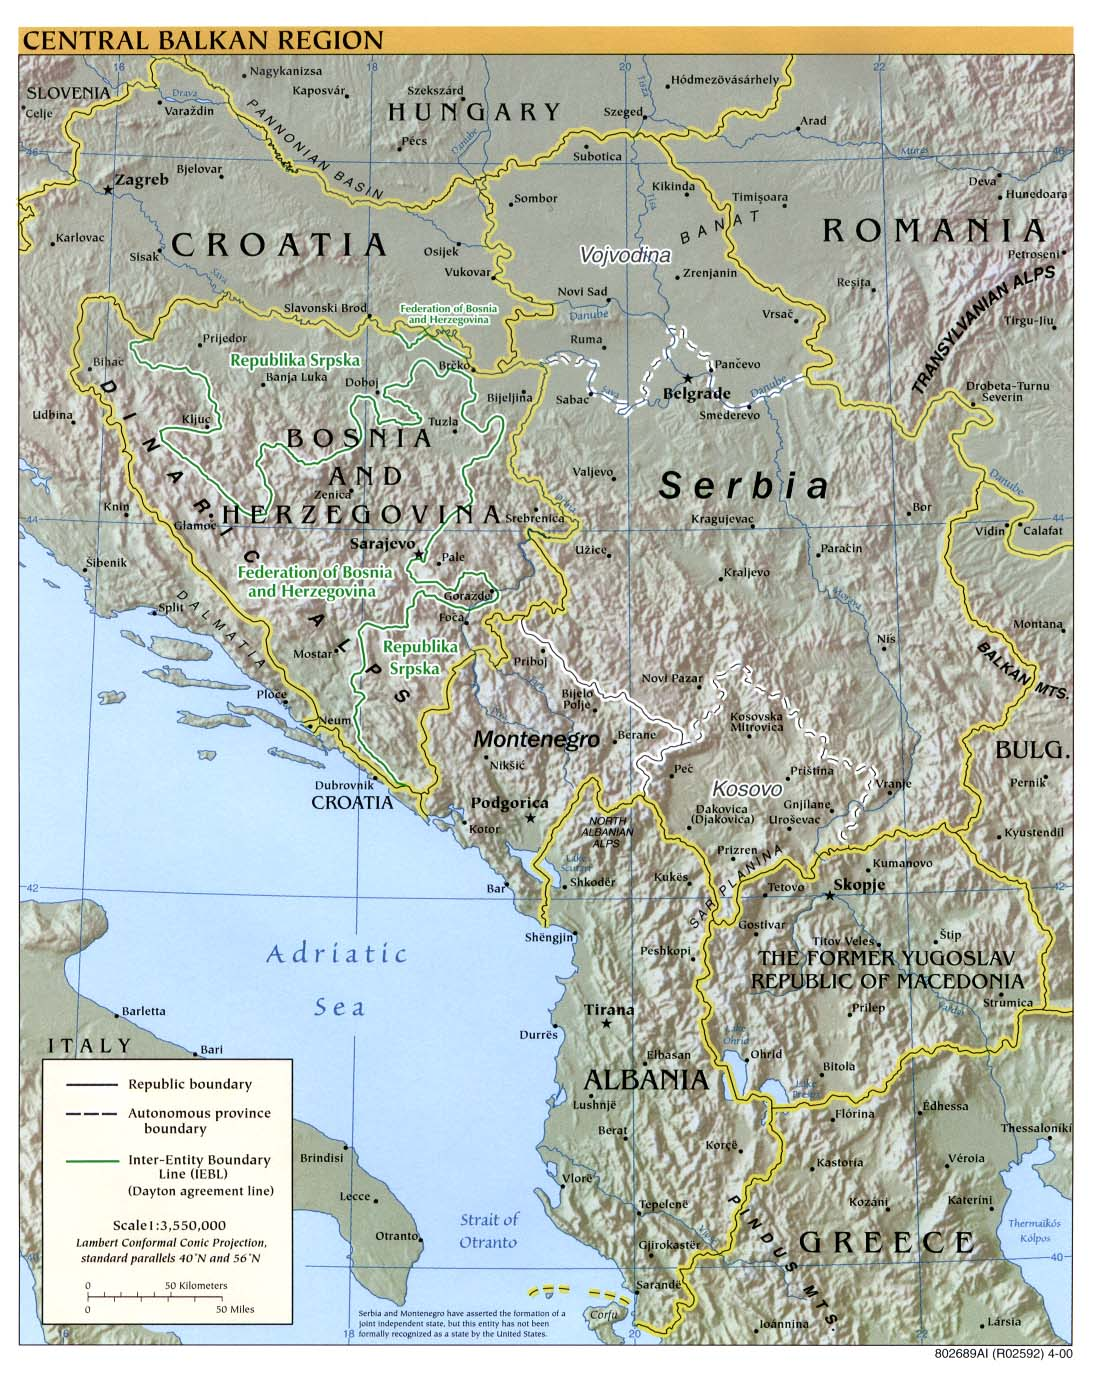 InterOpporg Physical Map Of The Central Balkan Region Large - Albania physical map 2000